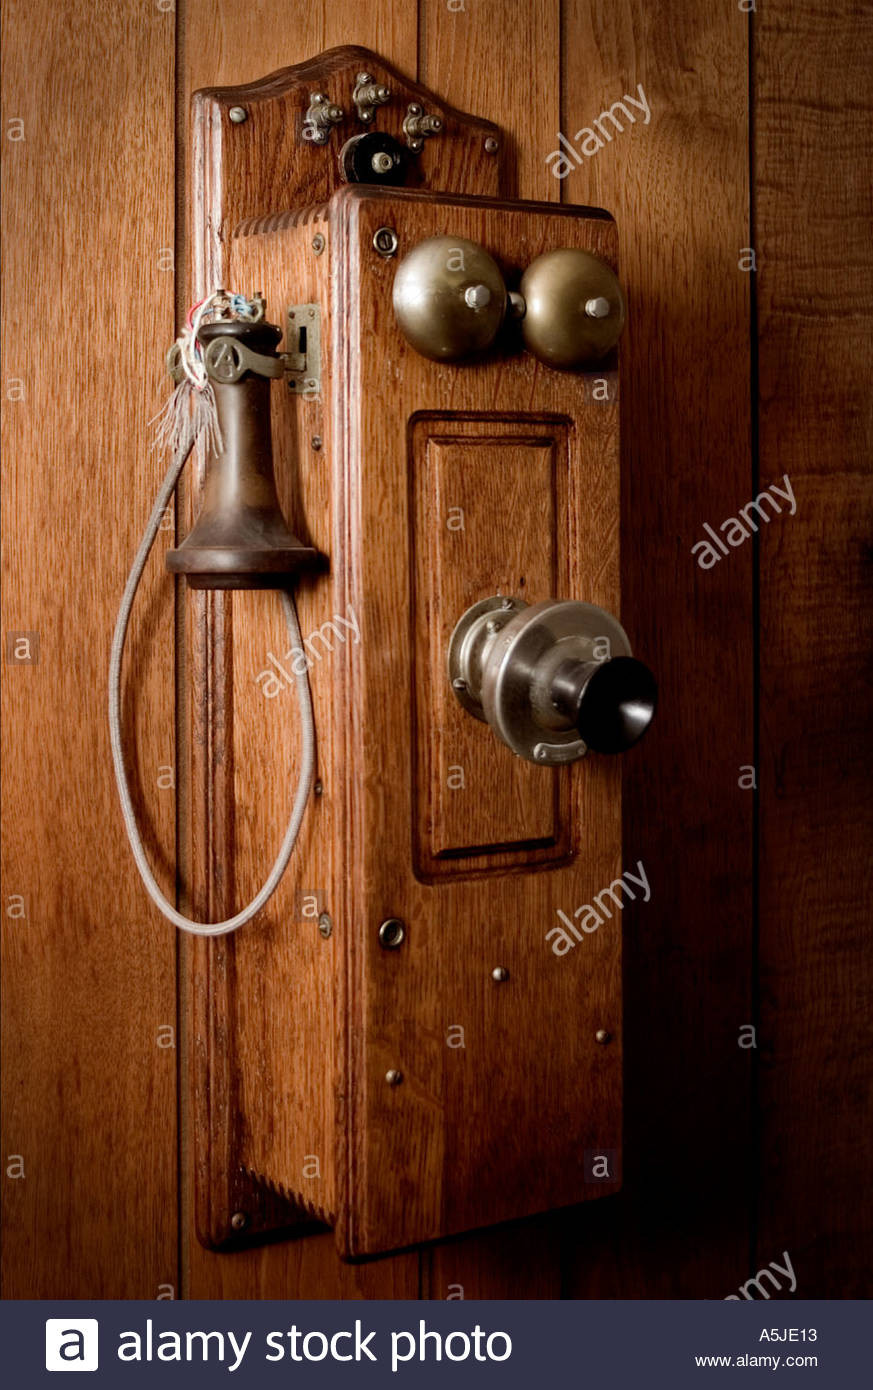 Best Of Antique Telephone Wooden Old Fashioned Wall Hung Hanging Old Fashioned Wall Phone Of Charming 47 Models Old Fashioned Wall Phone